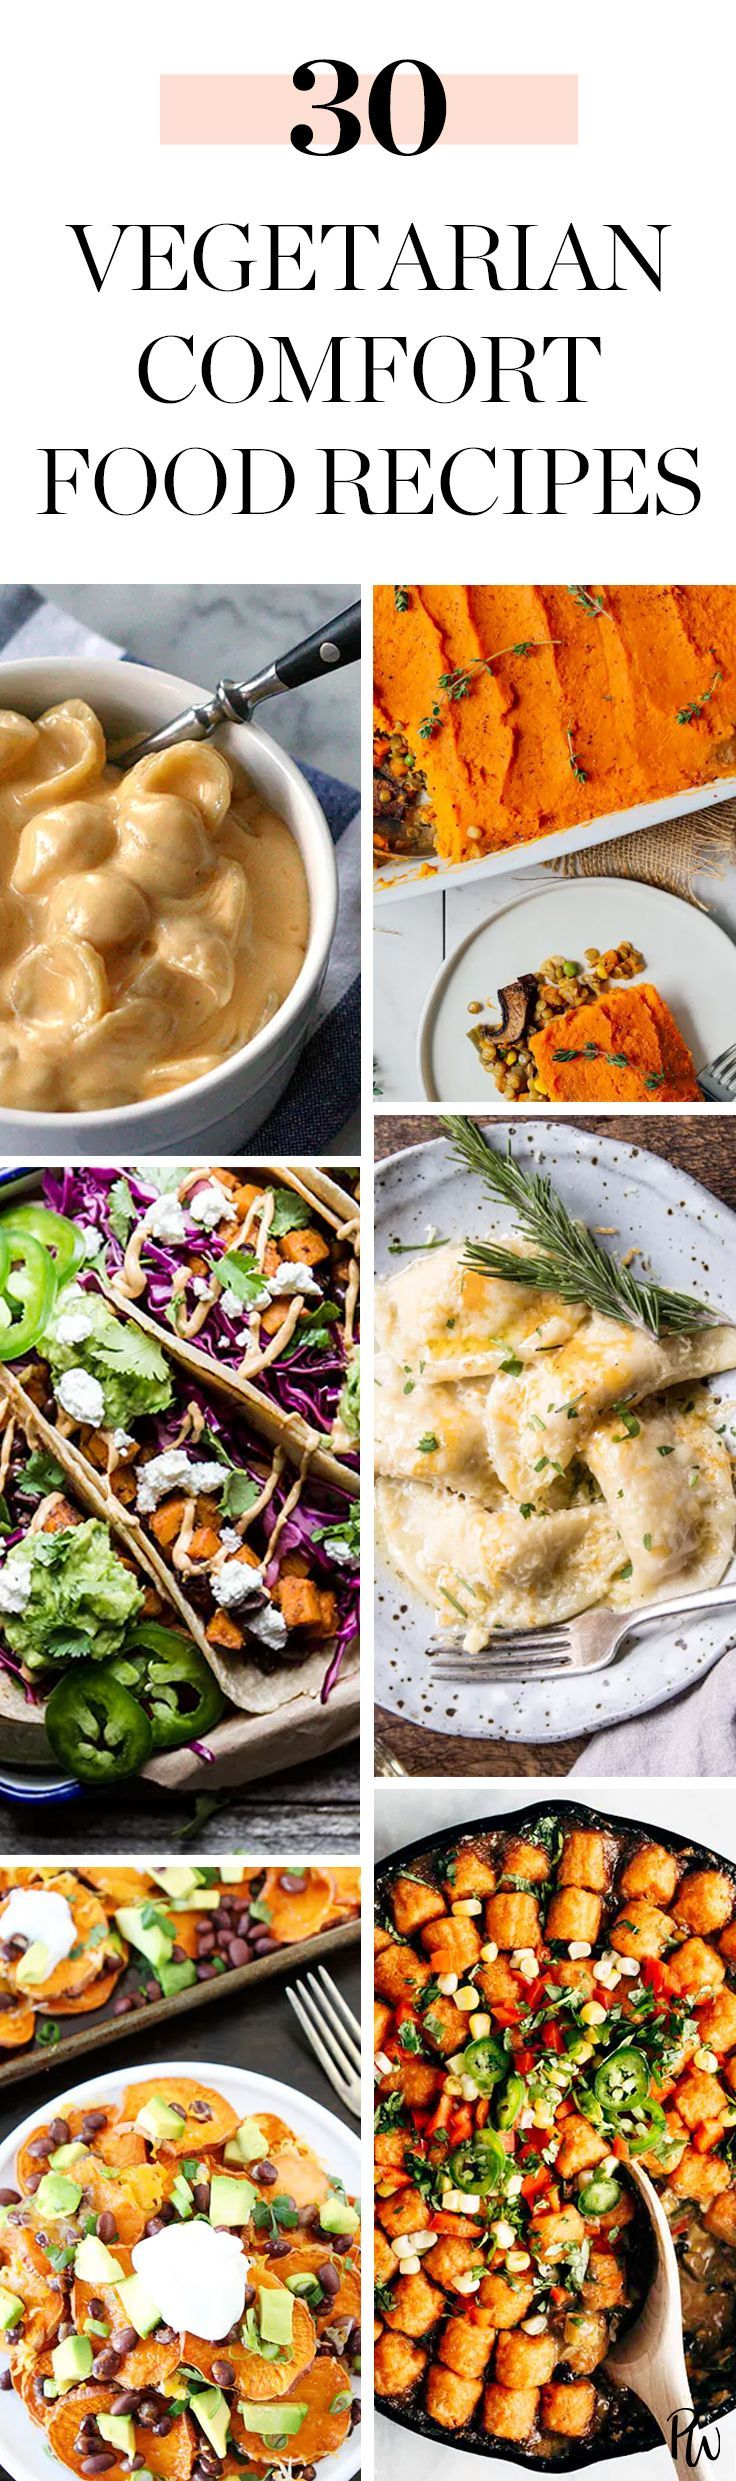 30 Vegetarian Comfort Food Recipes To Warm You Right Up